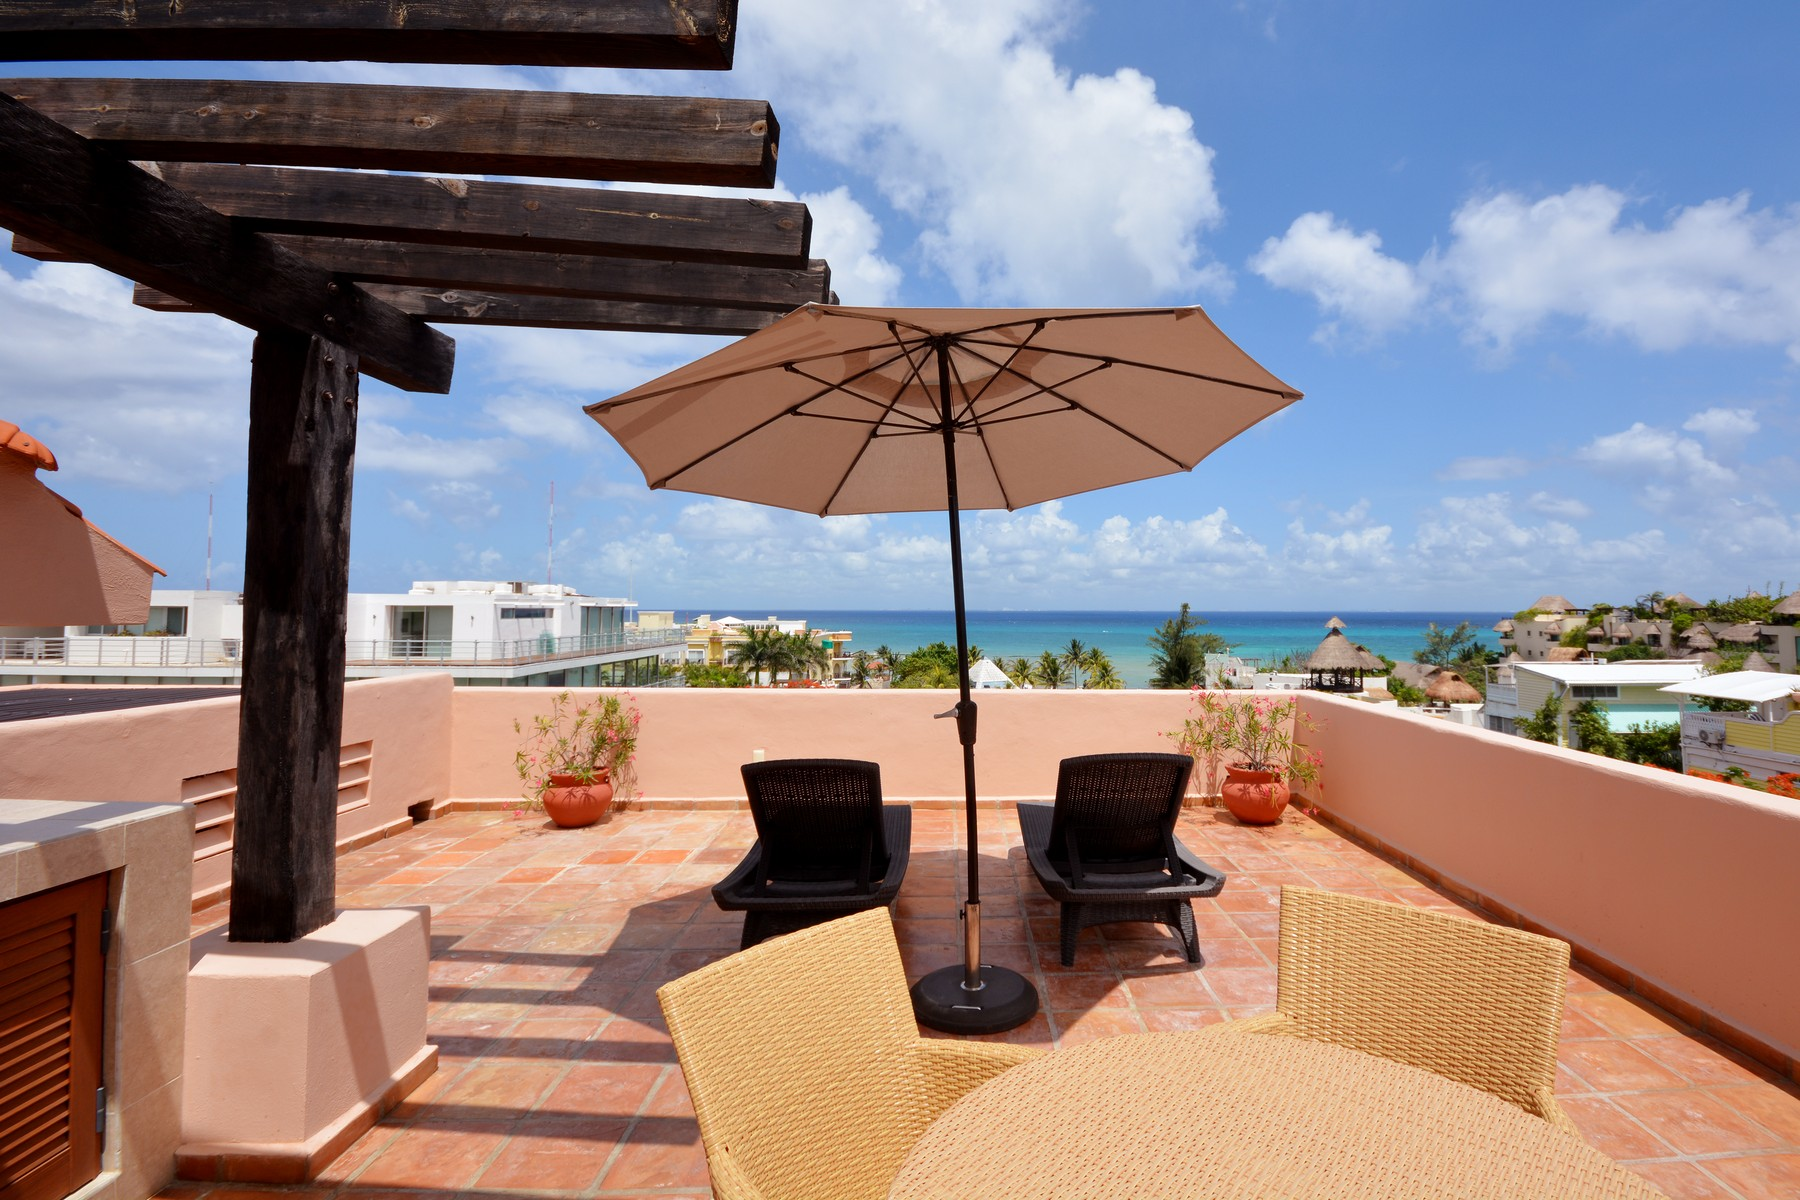 Condominium for Sale at DELUXE PENTHOUSE IN THE BEST LOCATION Deluxe penthouse in the best location Calle 16 Norte Bis entre 5a Ave y 1a Ave Playa Del Carmen, Quintana Roo, 77710 Mexico